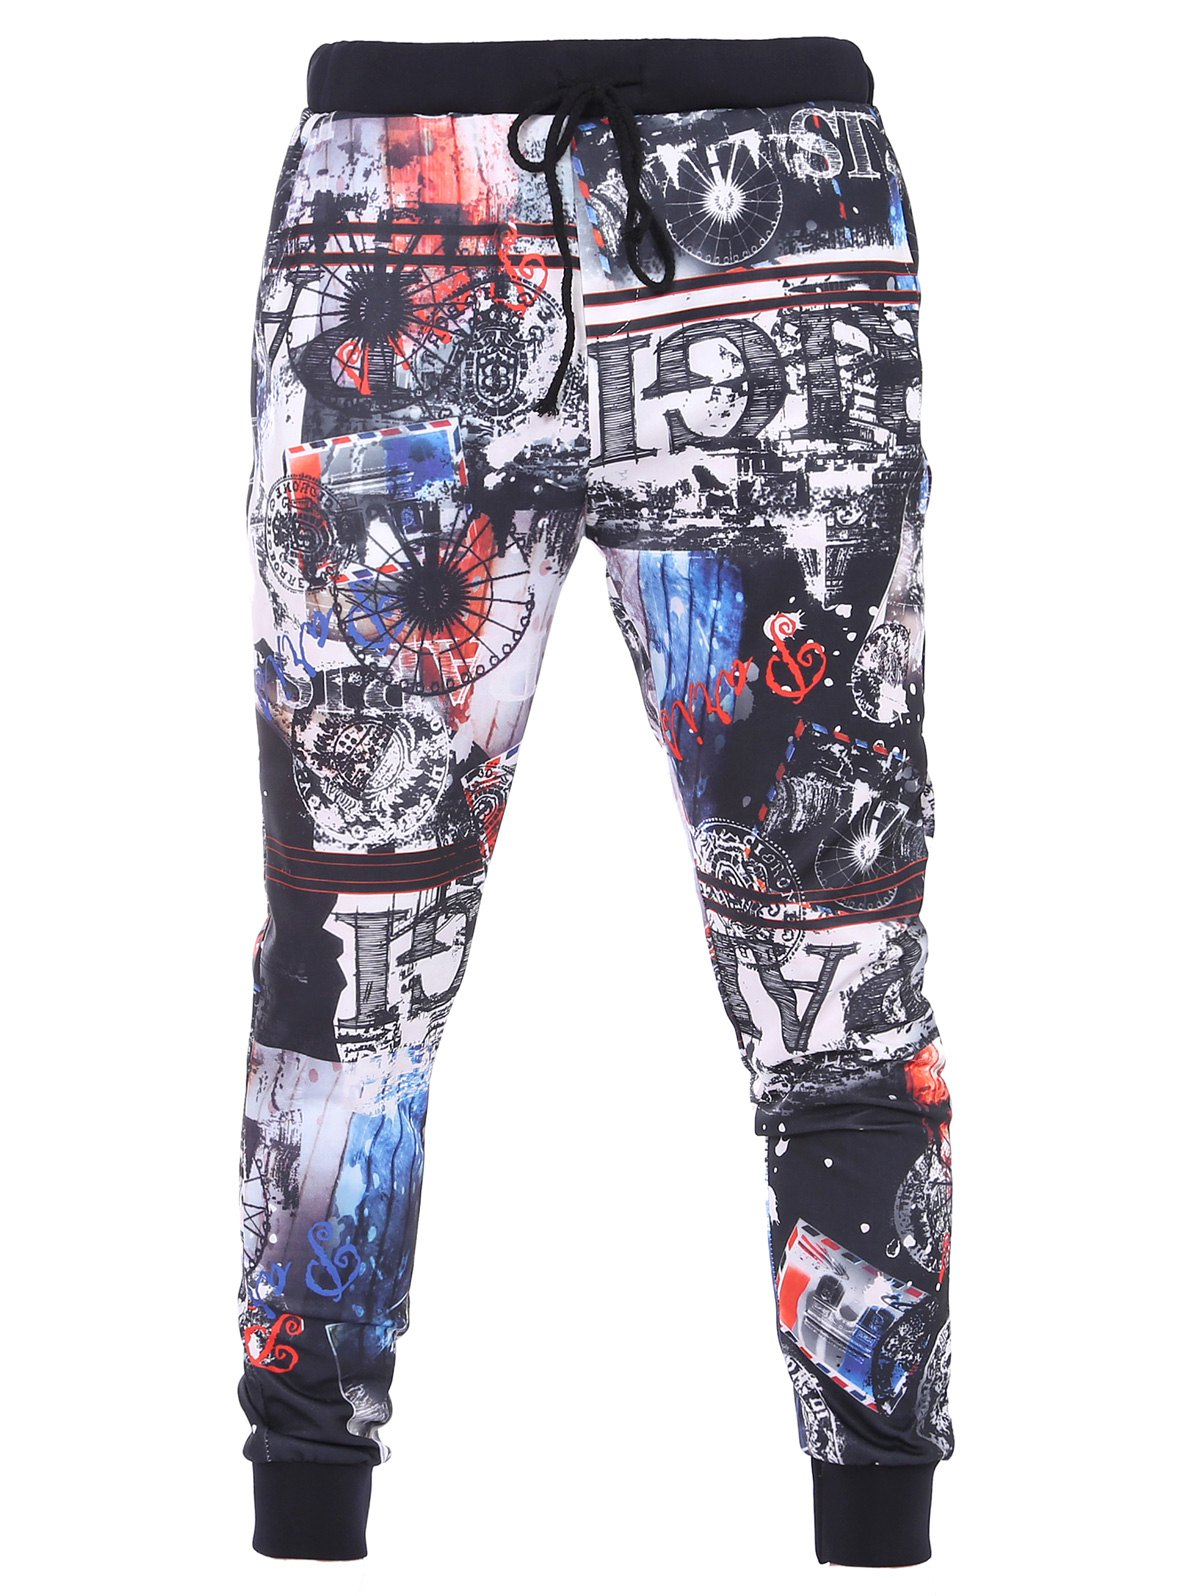 3D Abstract Print Lace-Up Beam Feet Men's Pants